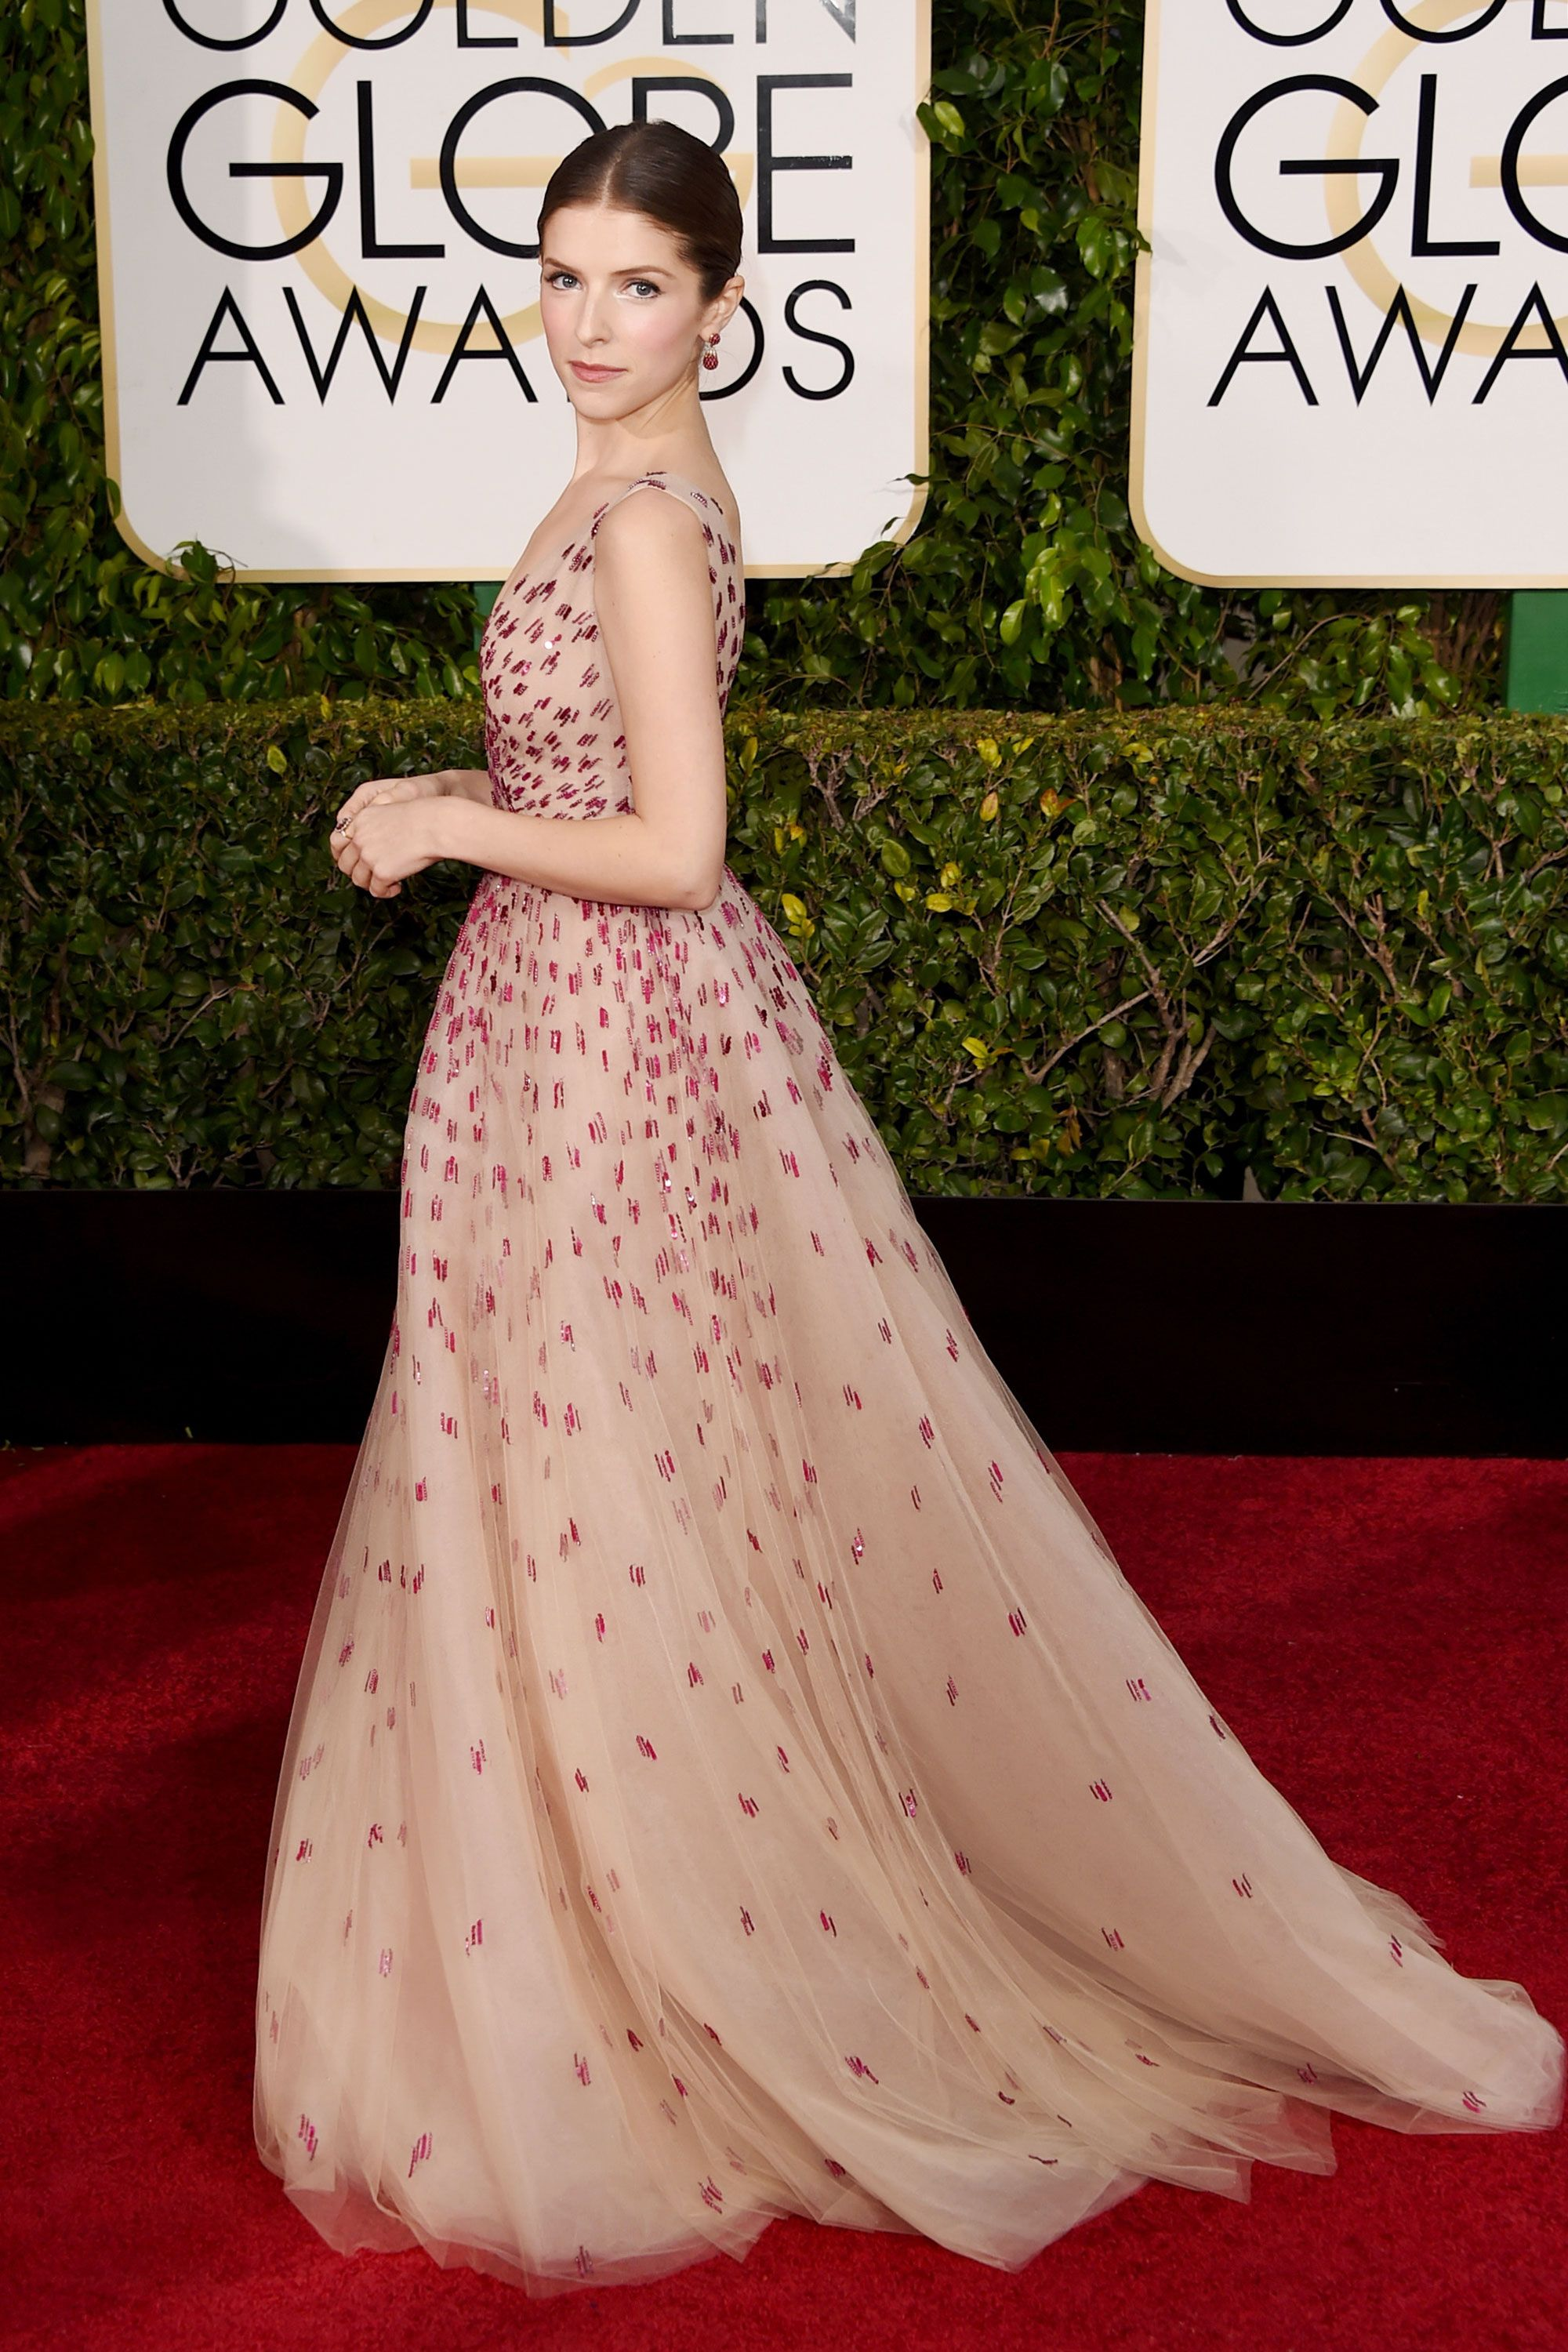 Golden Globes Red Carpet 2015 - Pictures from 2015 Golden Globes ...